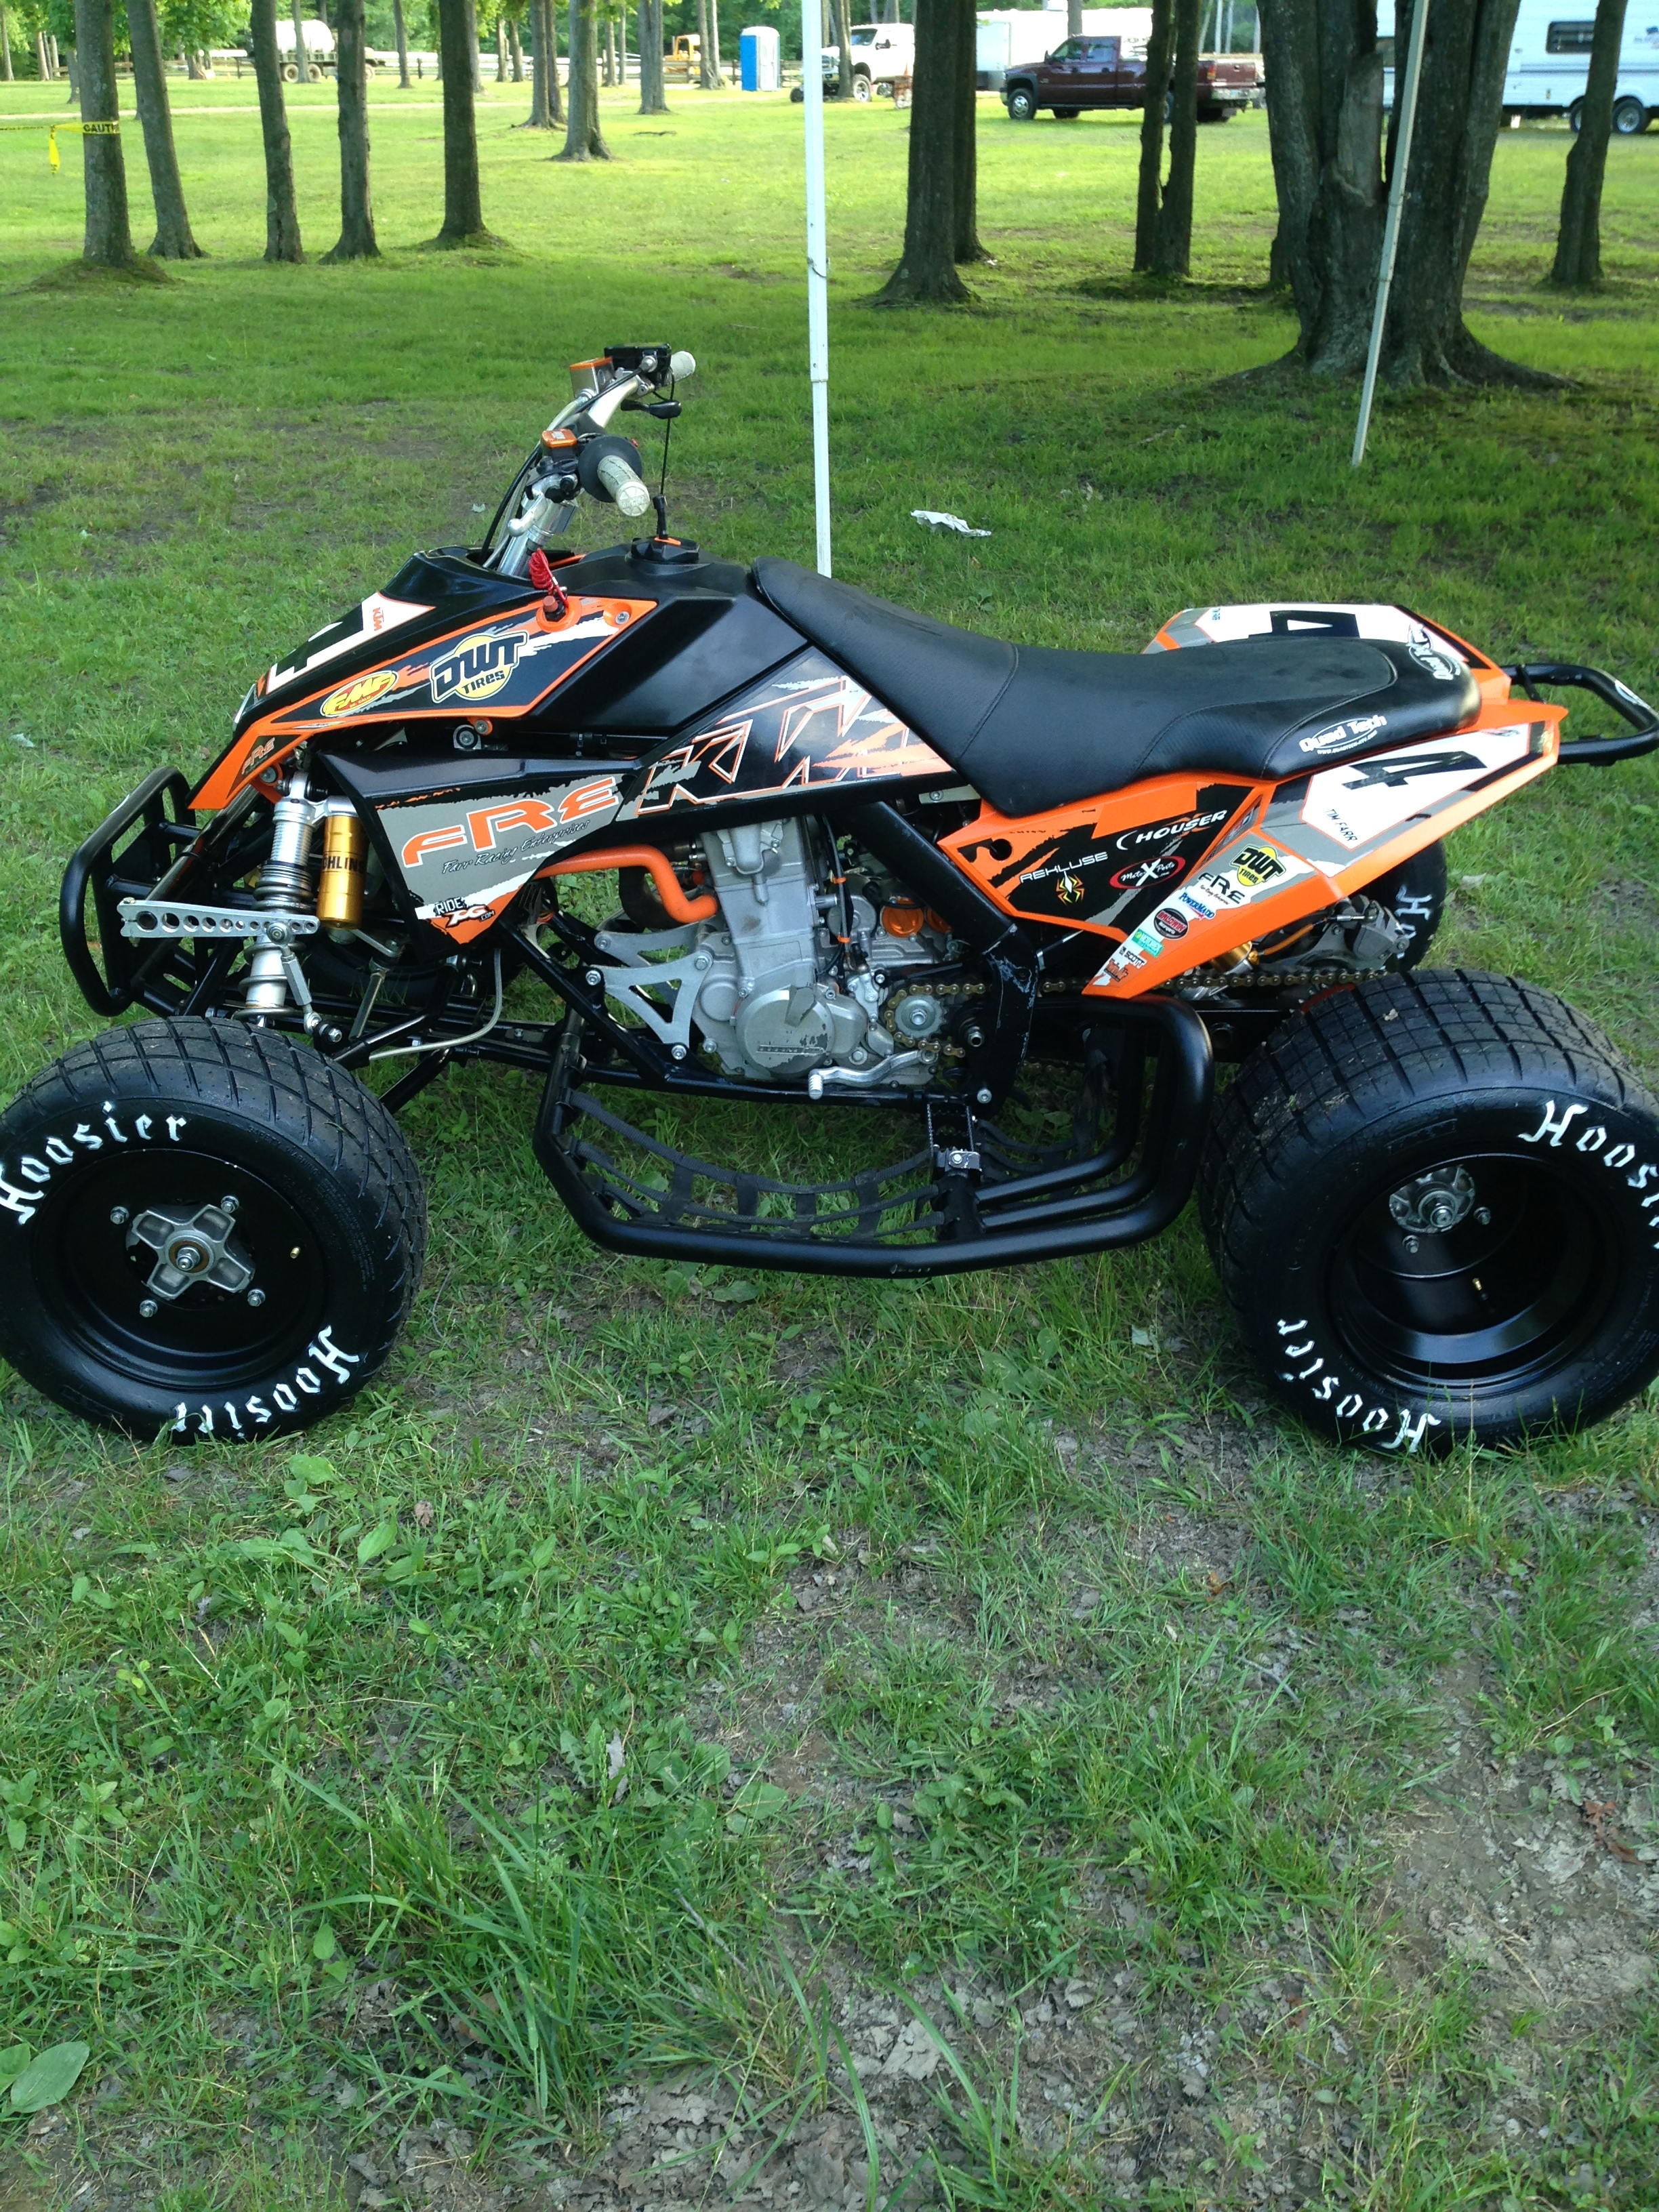 Tim Farr's factory built KTM-bryan-s-iphone-2-15-136.jpg